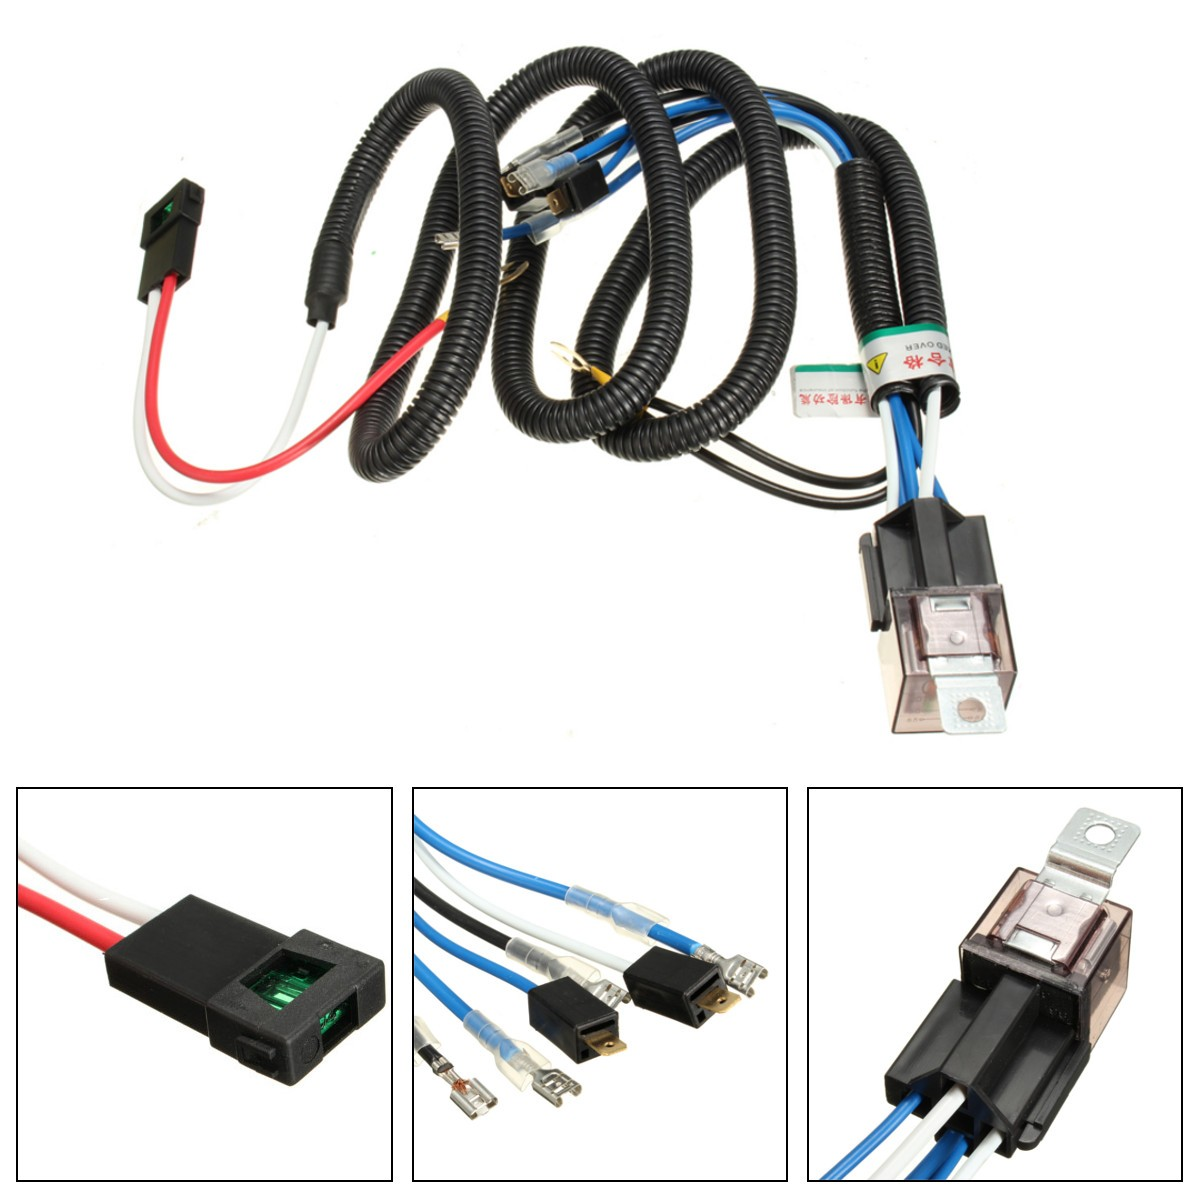 horn wiring harness reviews online shopping horn wiring harness 12v truck car horn relay wiring harness kit for grille mount blast tone horns